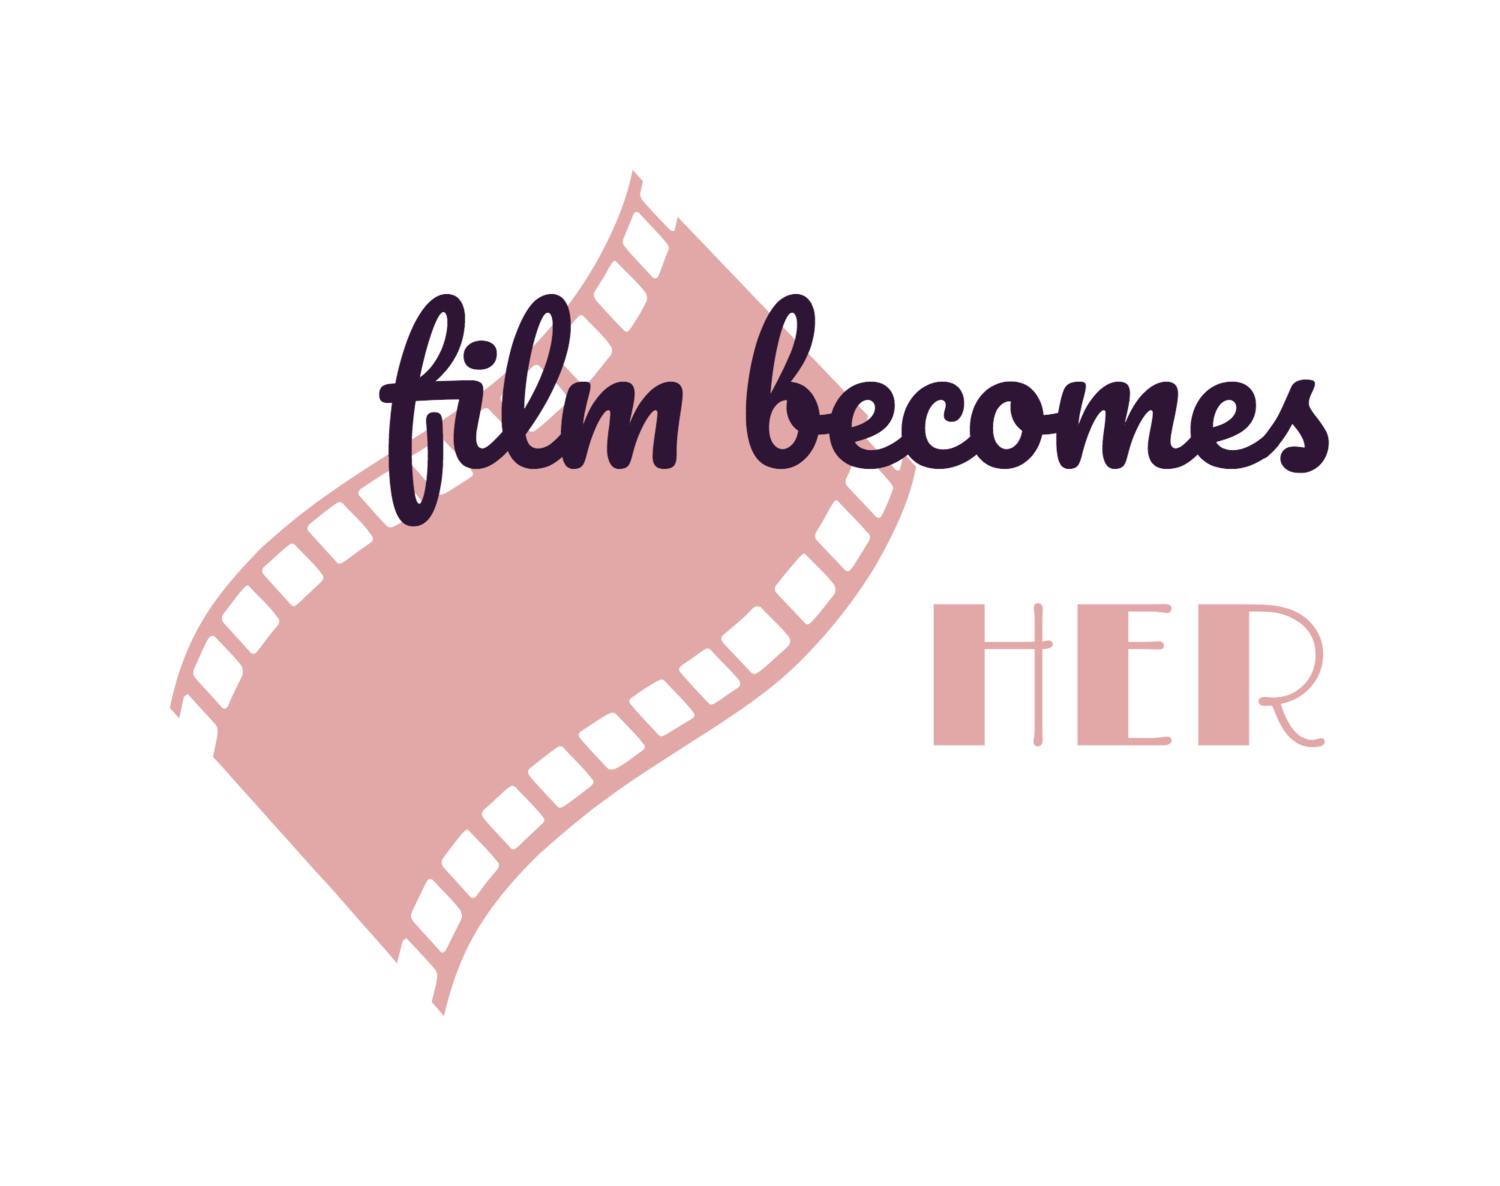 Film Becomes Her